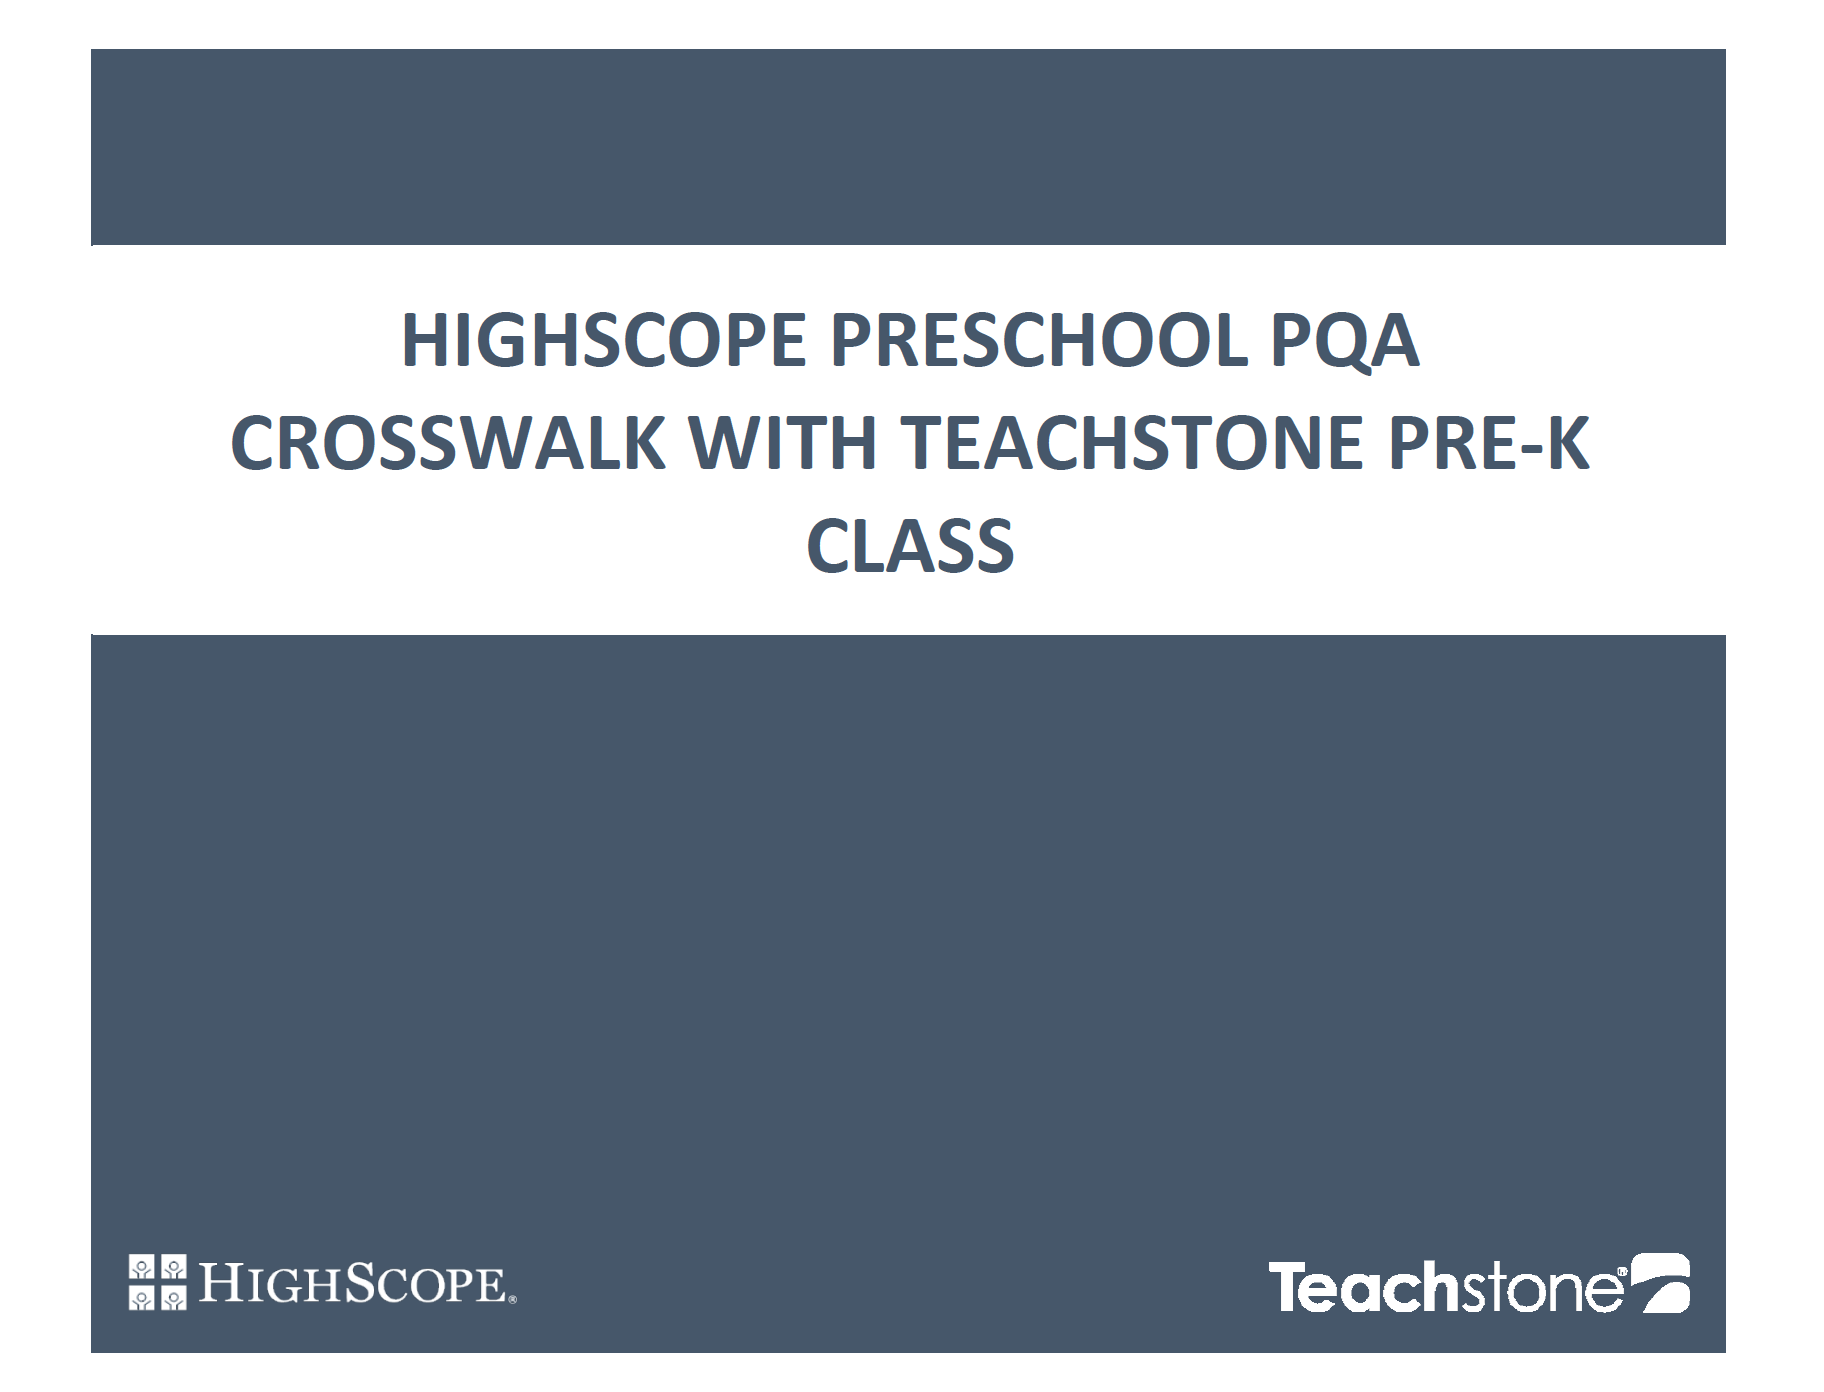 Highscope Preschool PQA and Pre-L CLASS